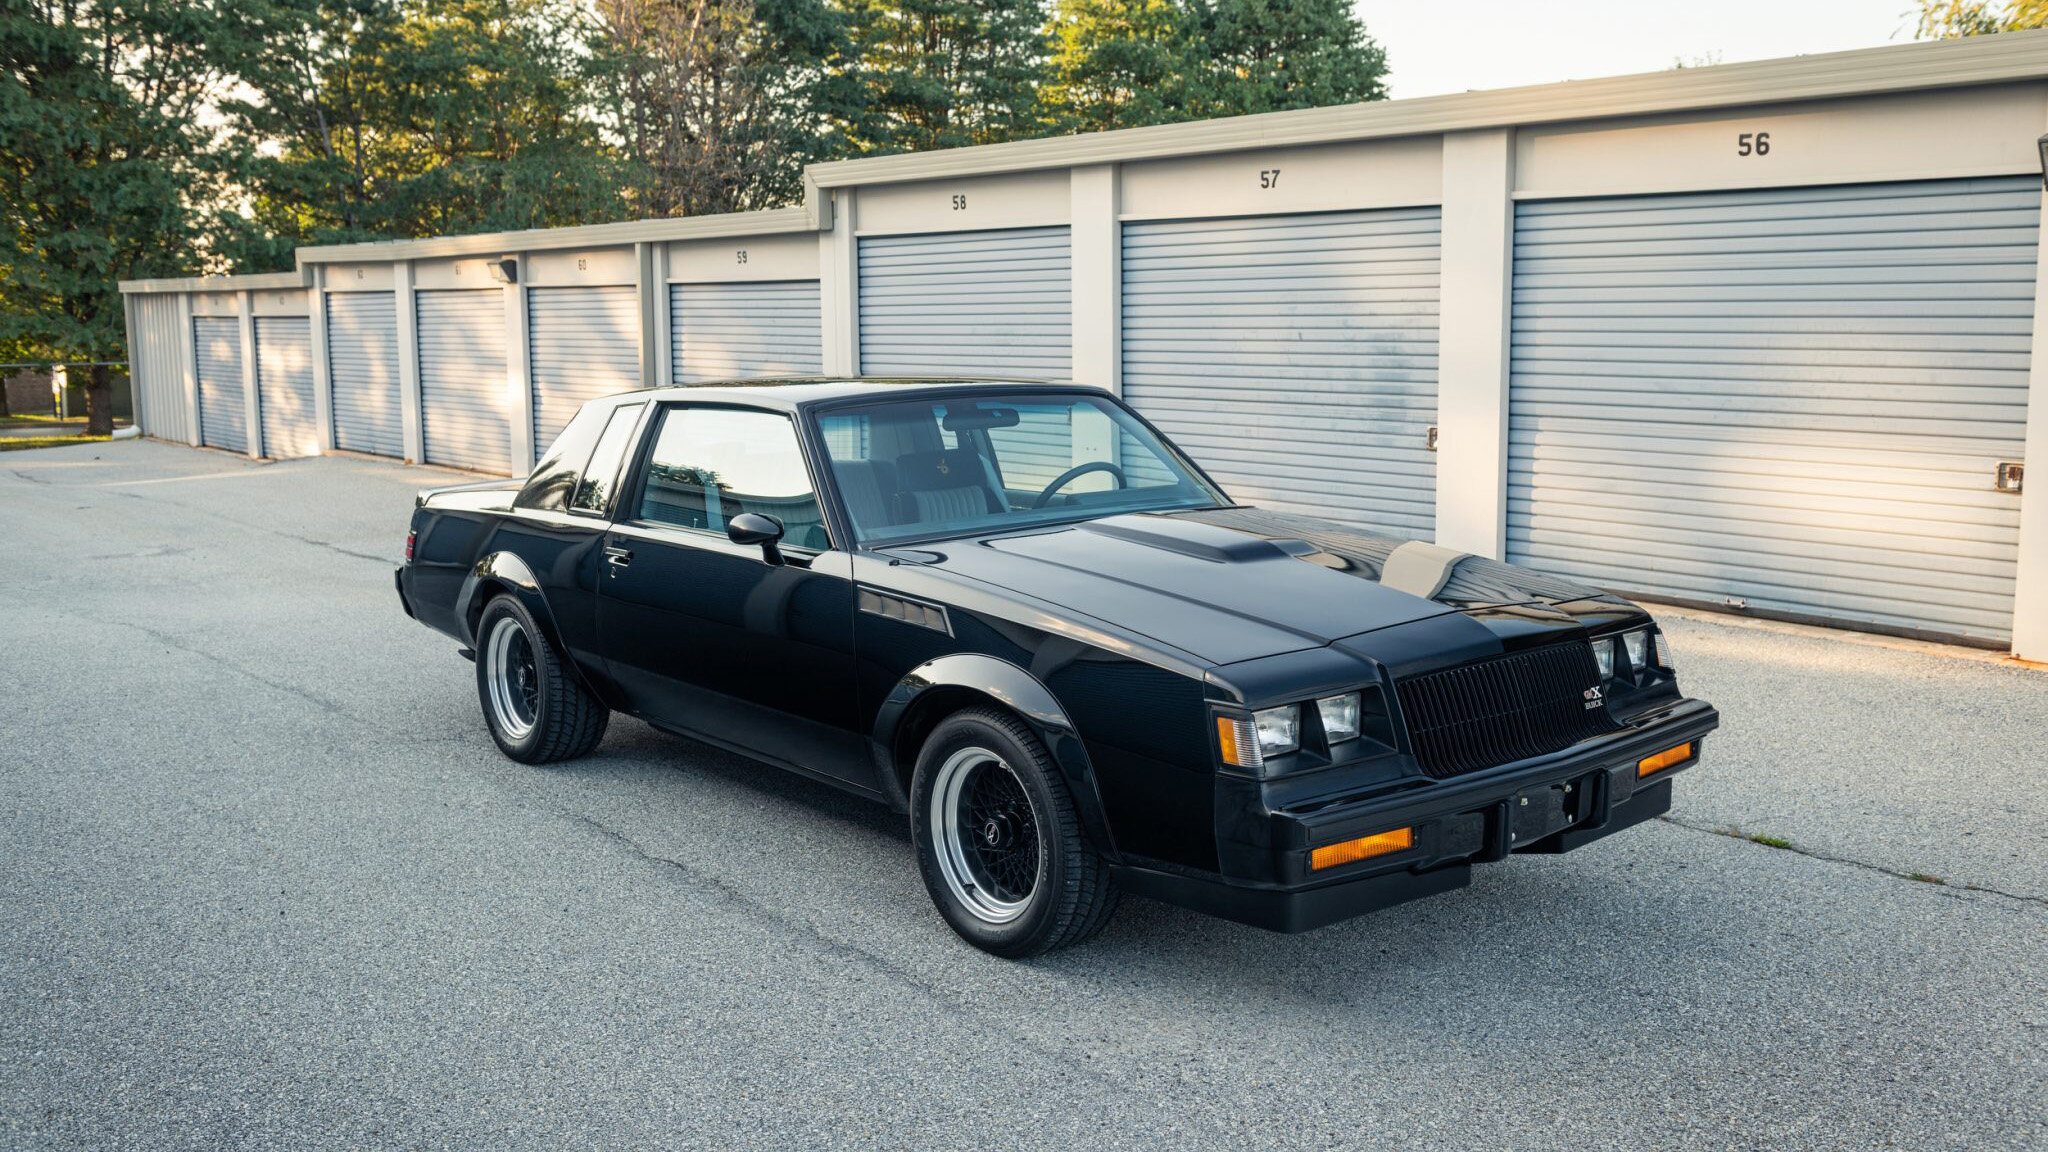 A 34-year-old Buick Grand National coupe equipped to the highest specification is being auctioned off with bidding at $115,000 so far.